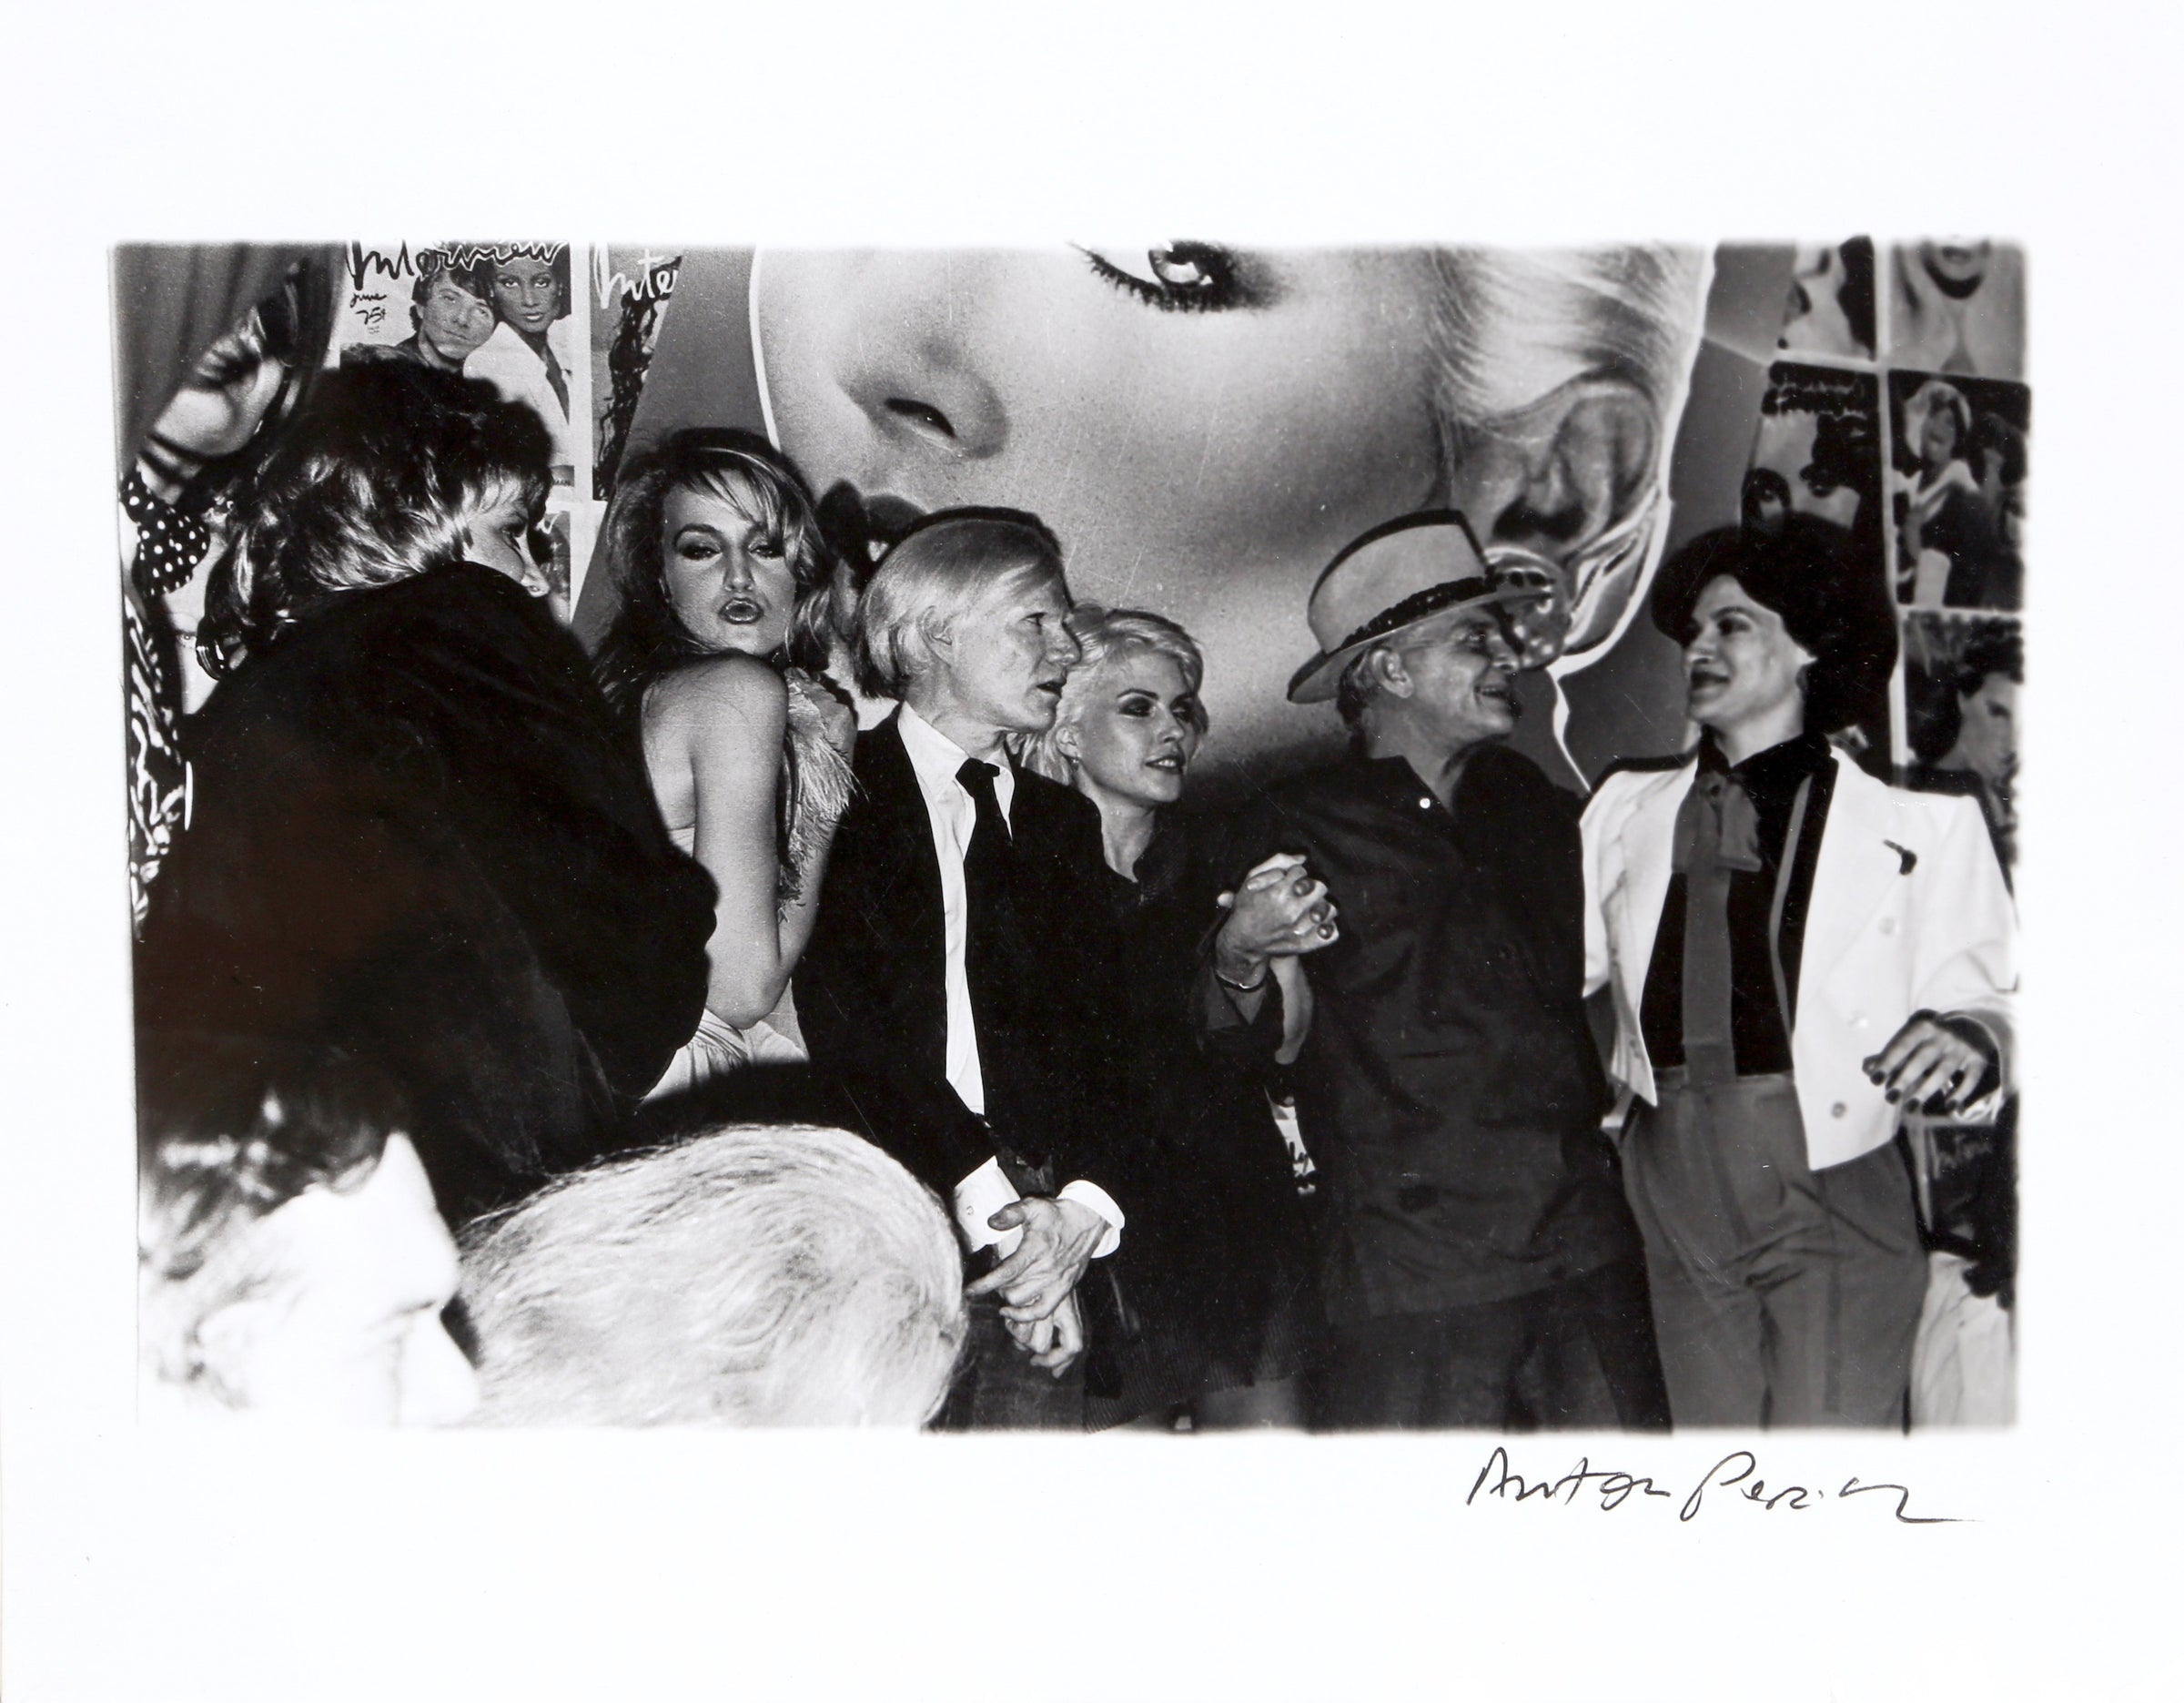 Anton Perich, Interview Magazine Party: Andy Warhol, Jerry Hall, Debbie Harry, Truman Capote, Paloma Picasso Black and White - RoGallery